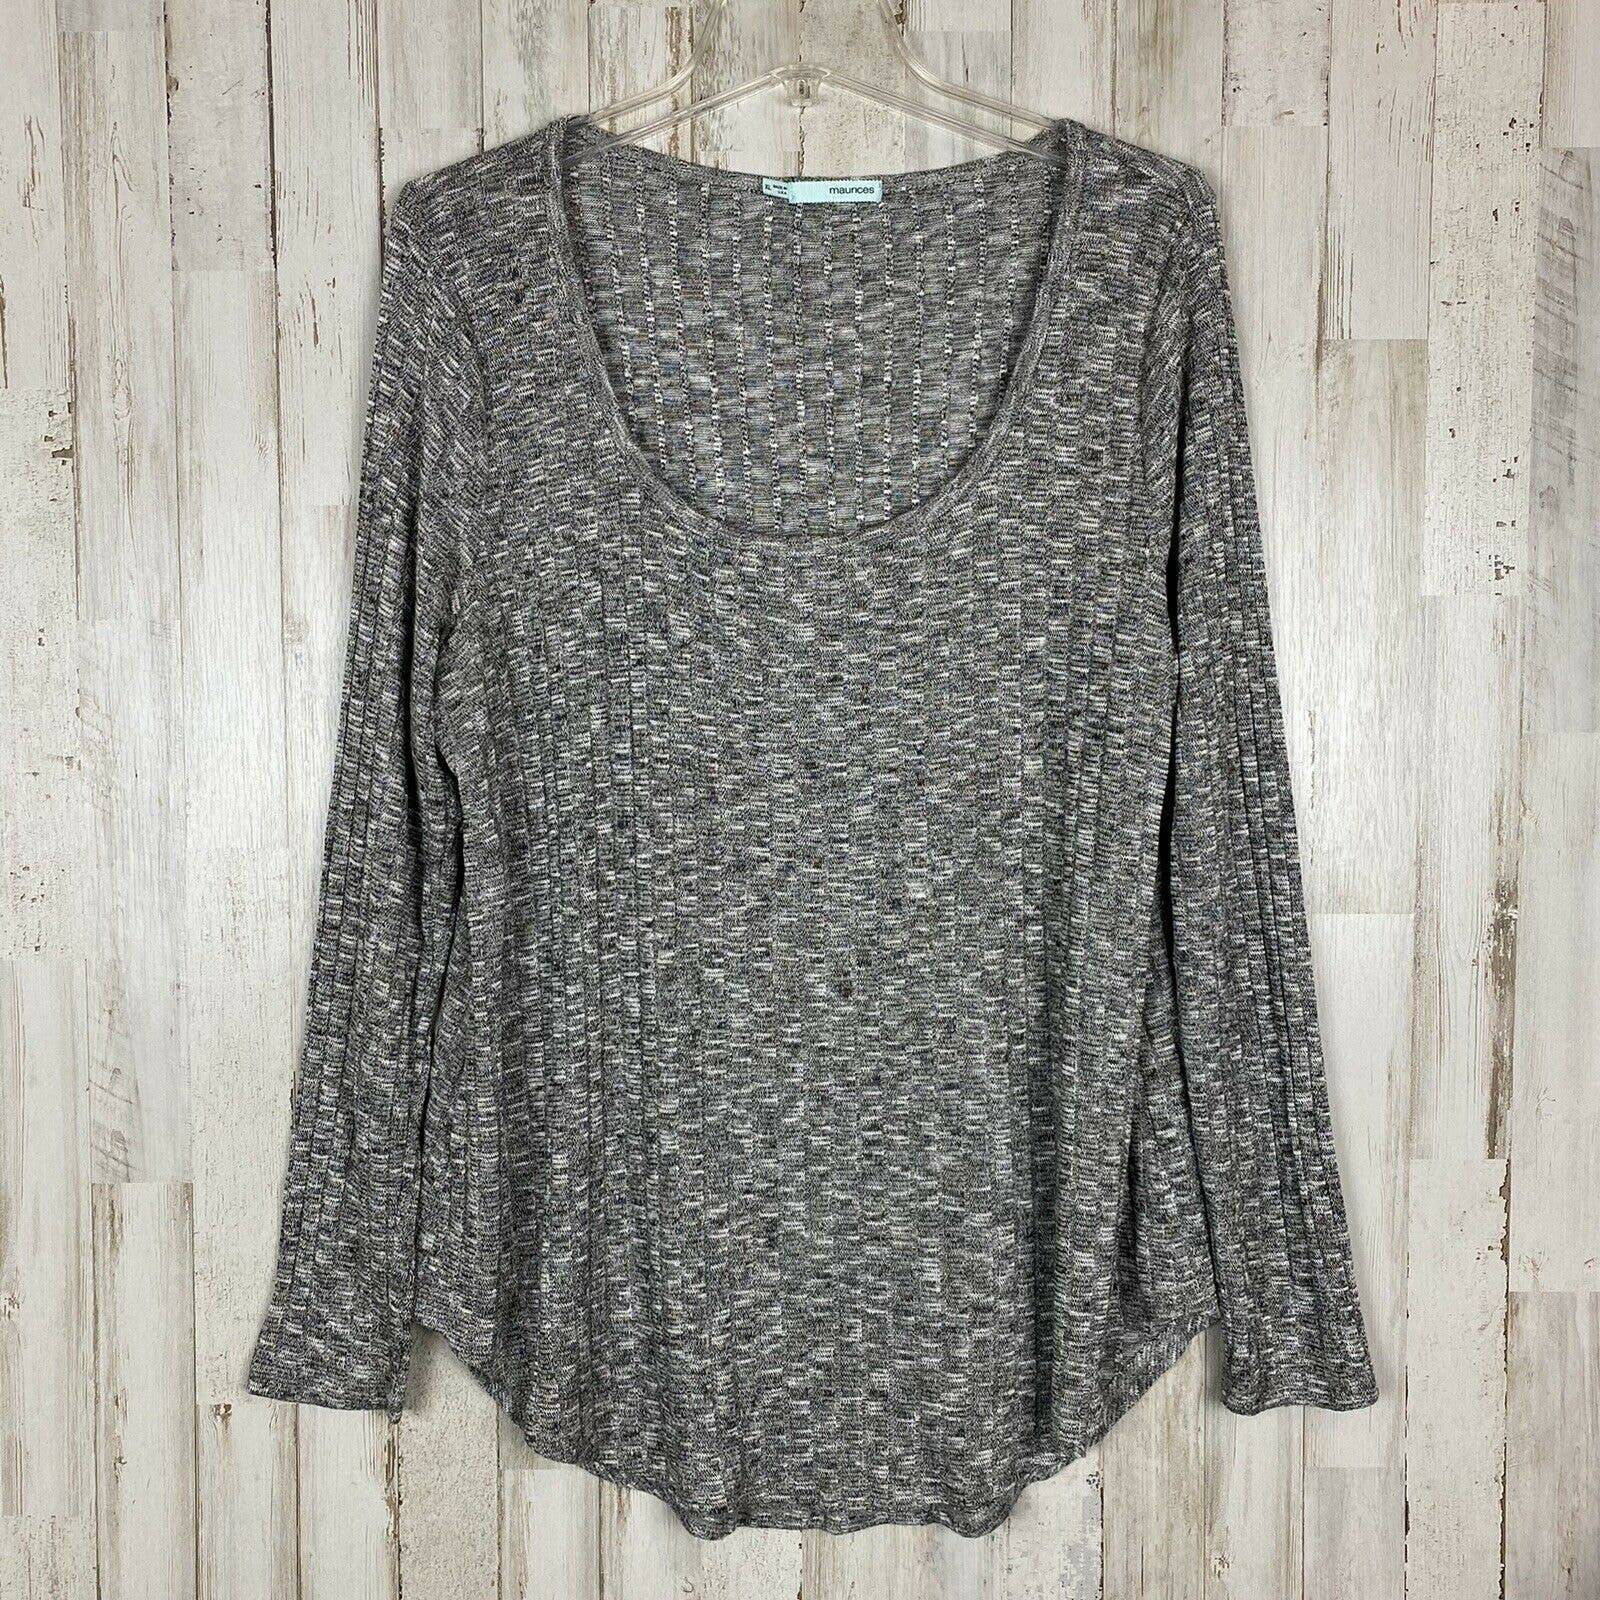 Maurices Sweater XL Scoop Neck Ribbed